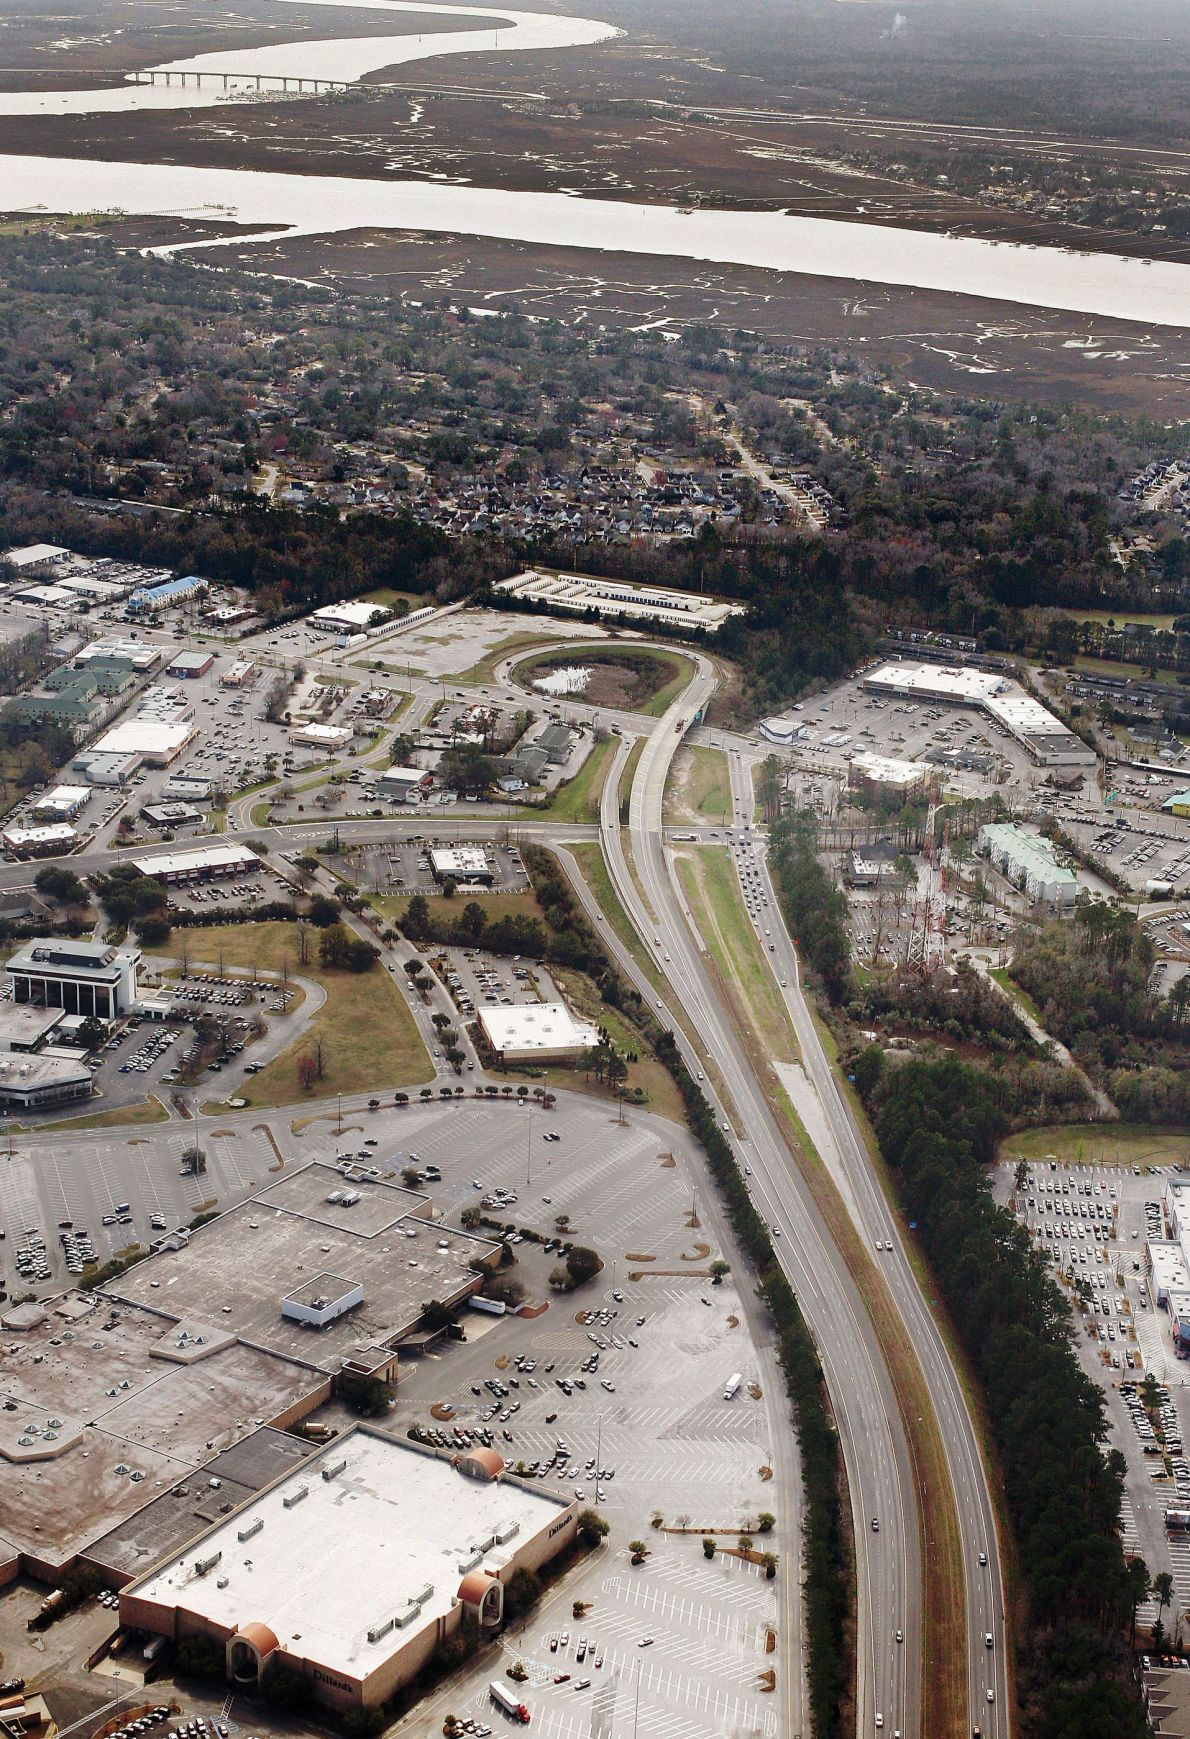 Partial completion of I-526 extension unlikely without guaranteed funding